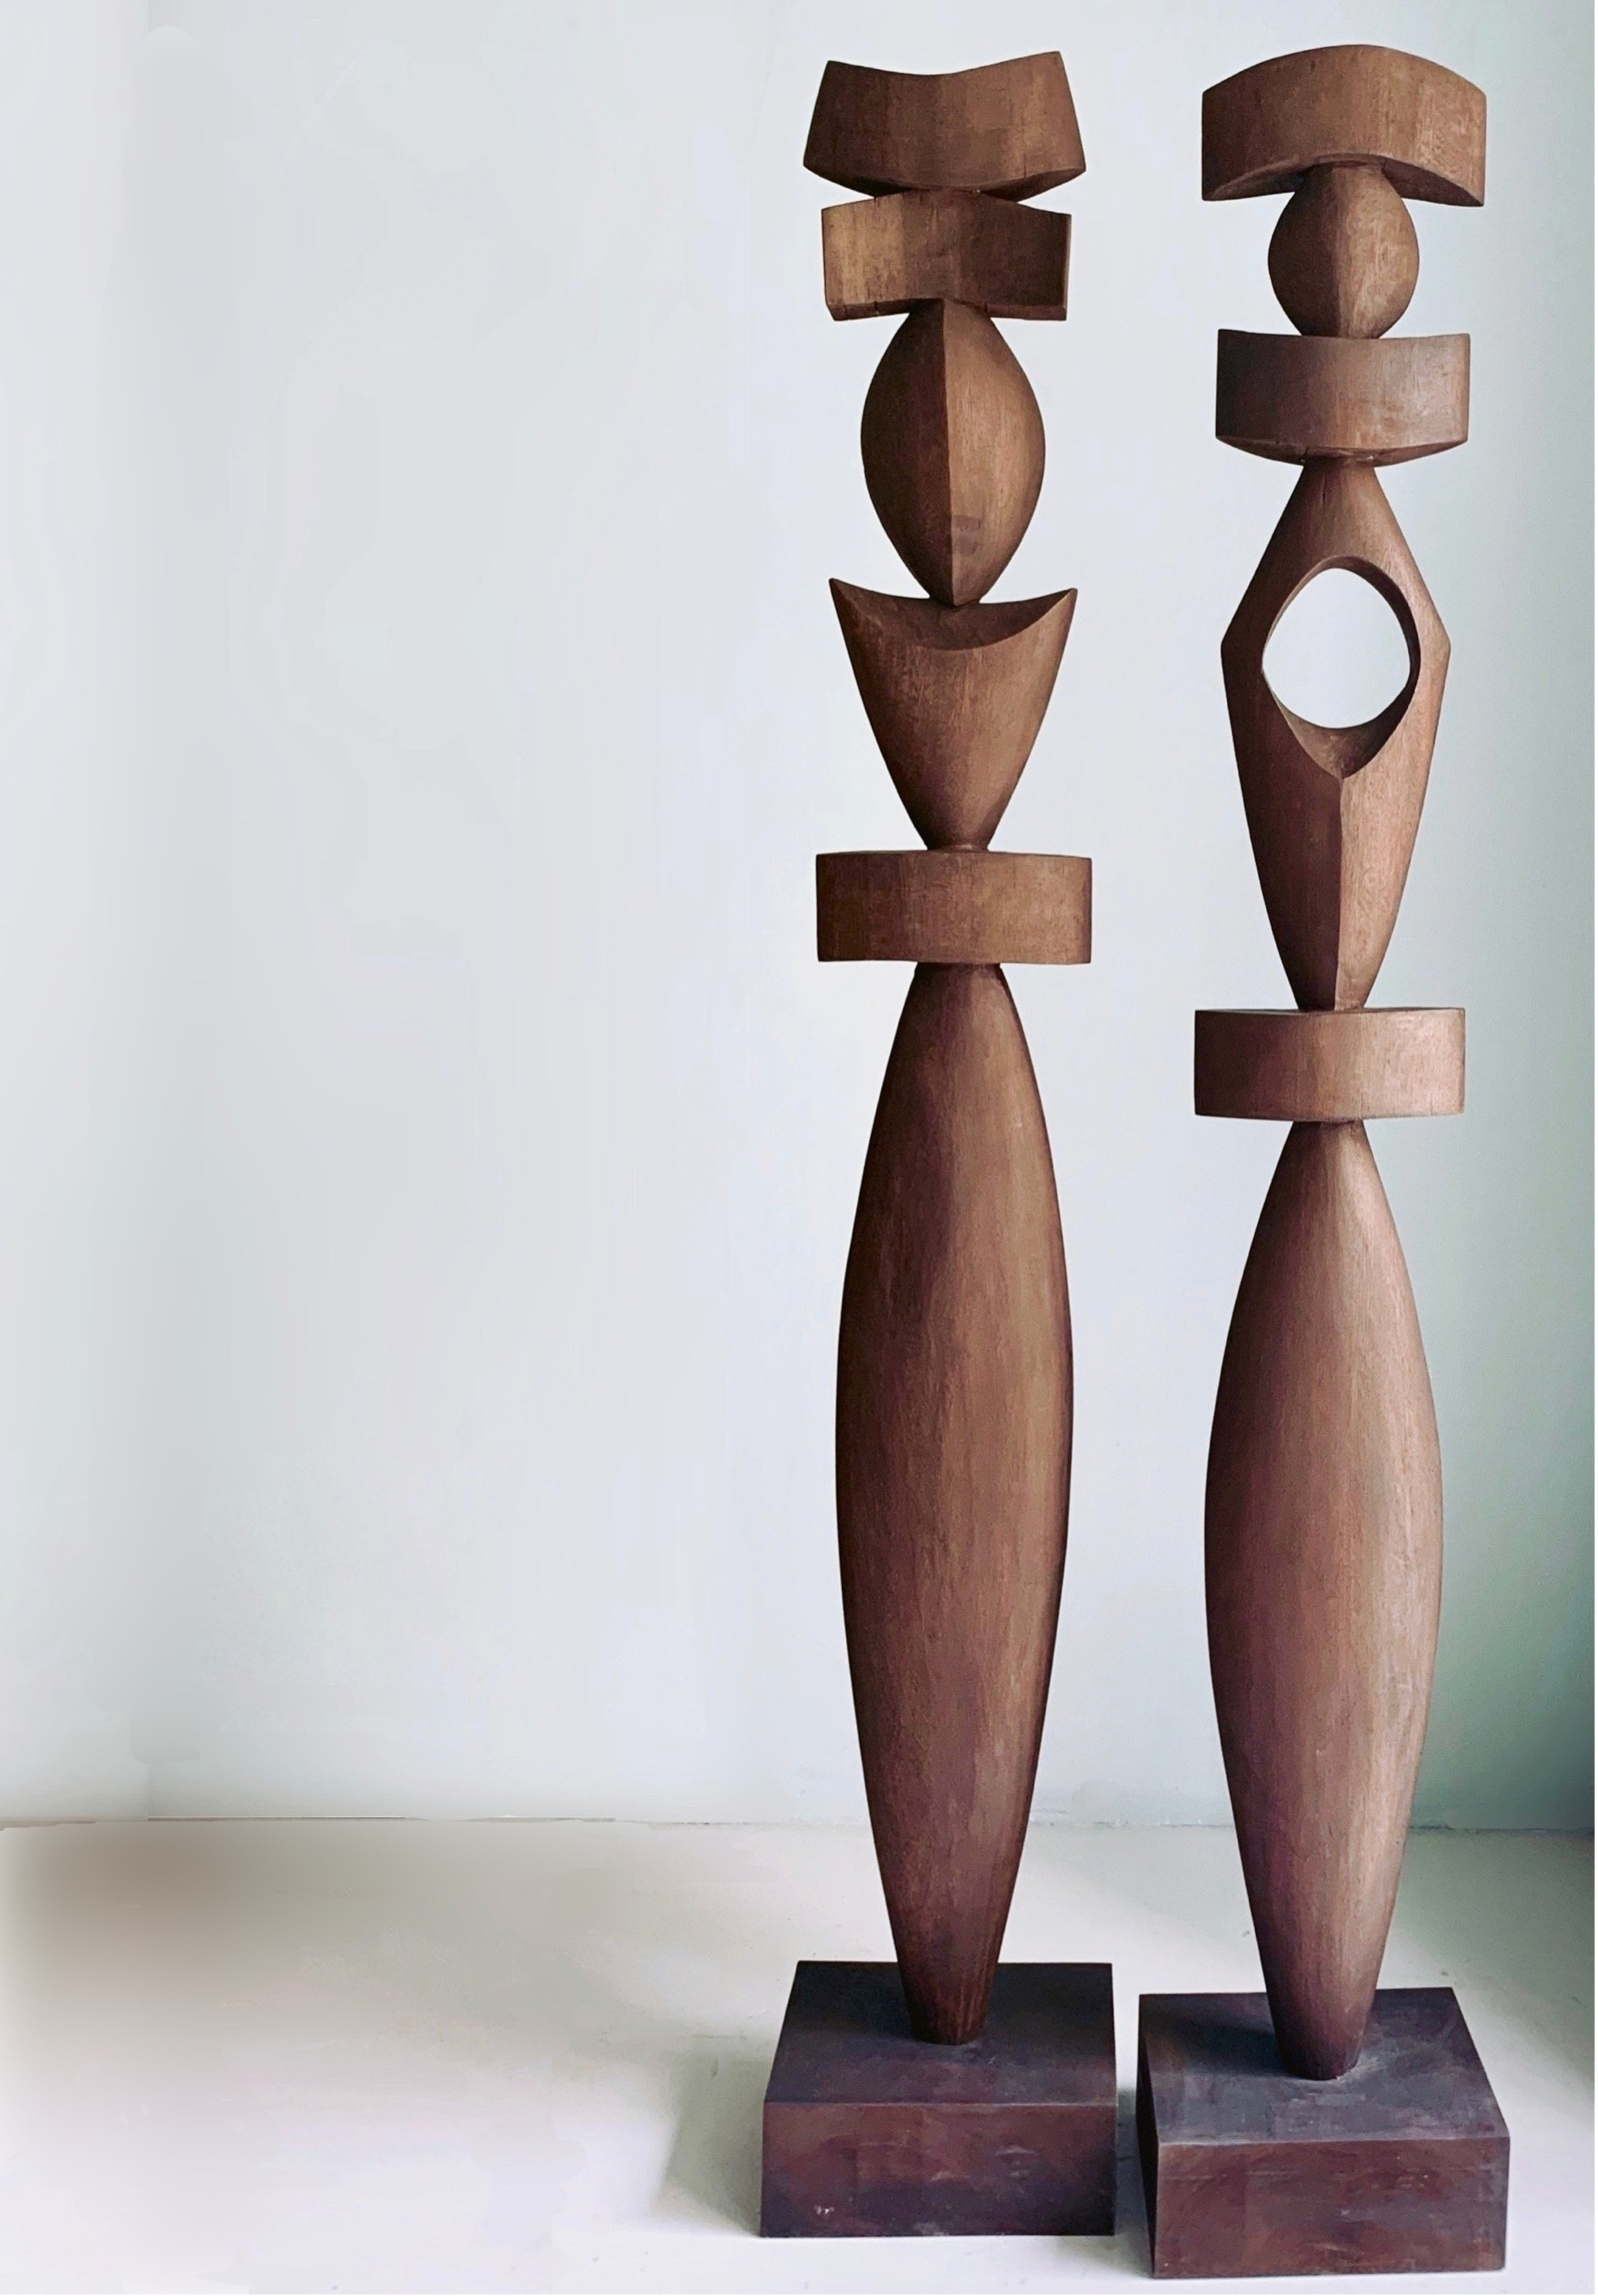 bertrand-creach-1980-modern-sculpture-teck-idole-home-decor-interior-design-contemporary-20thcentury